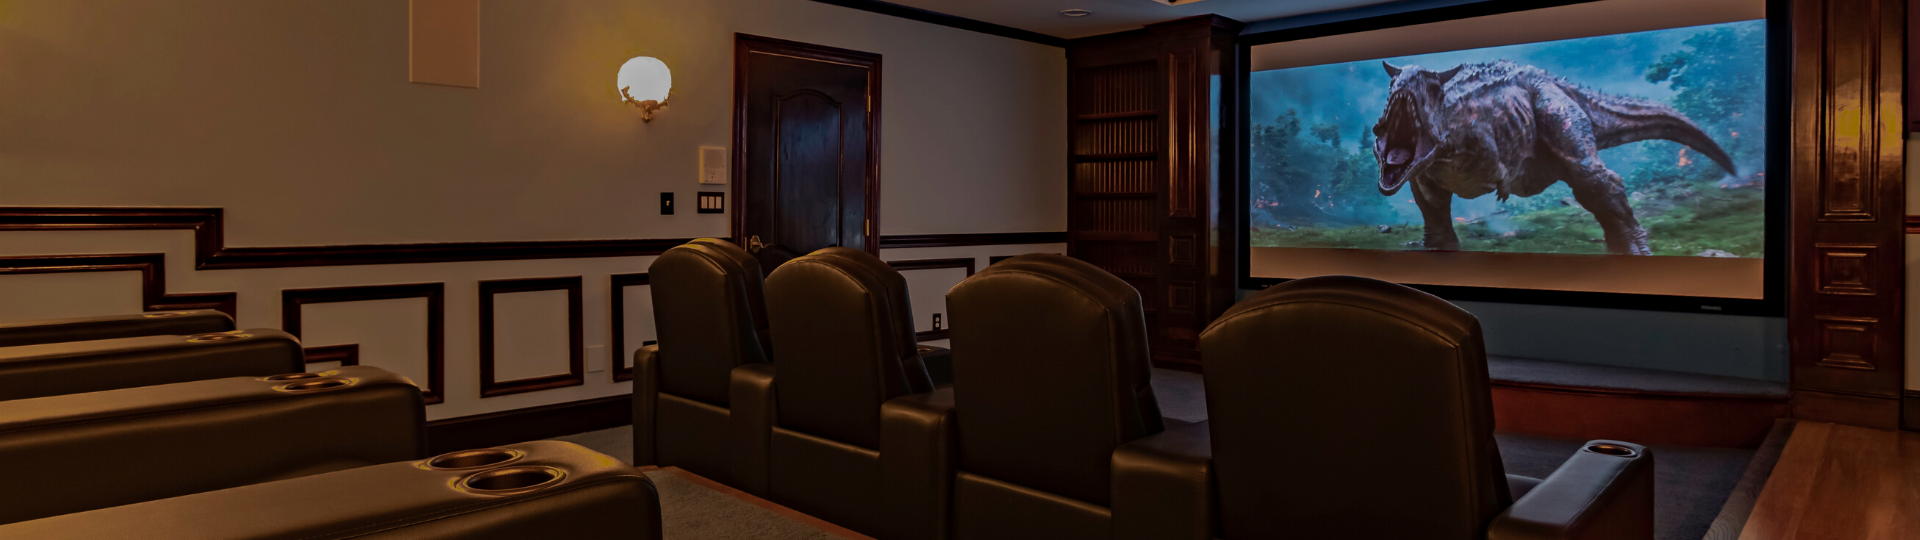 Moseley-Home-Theater